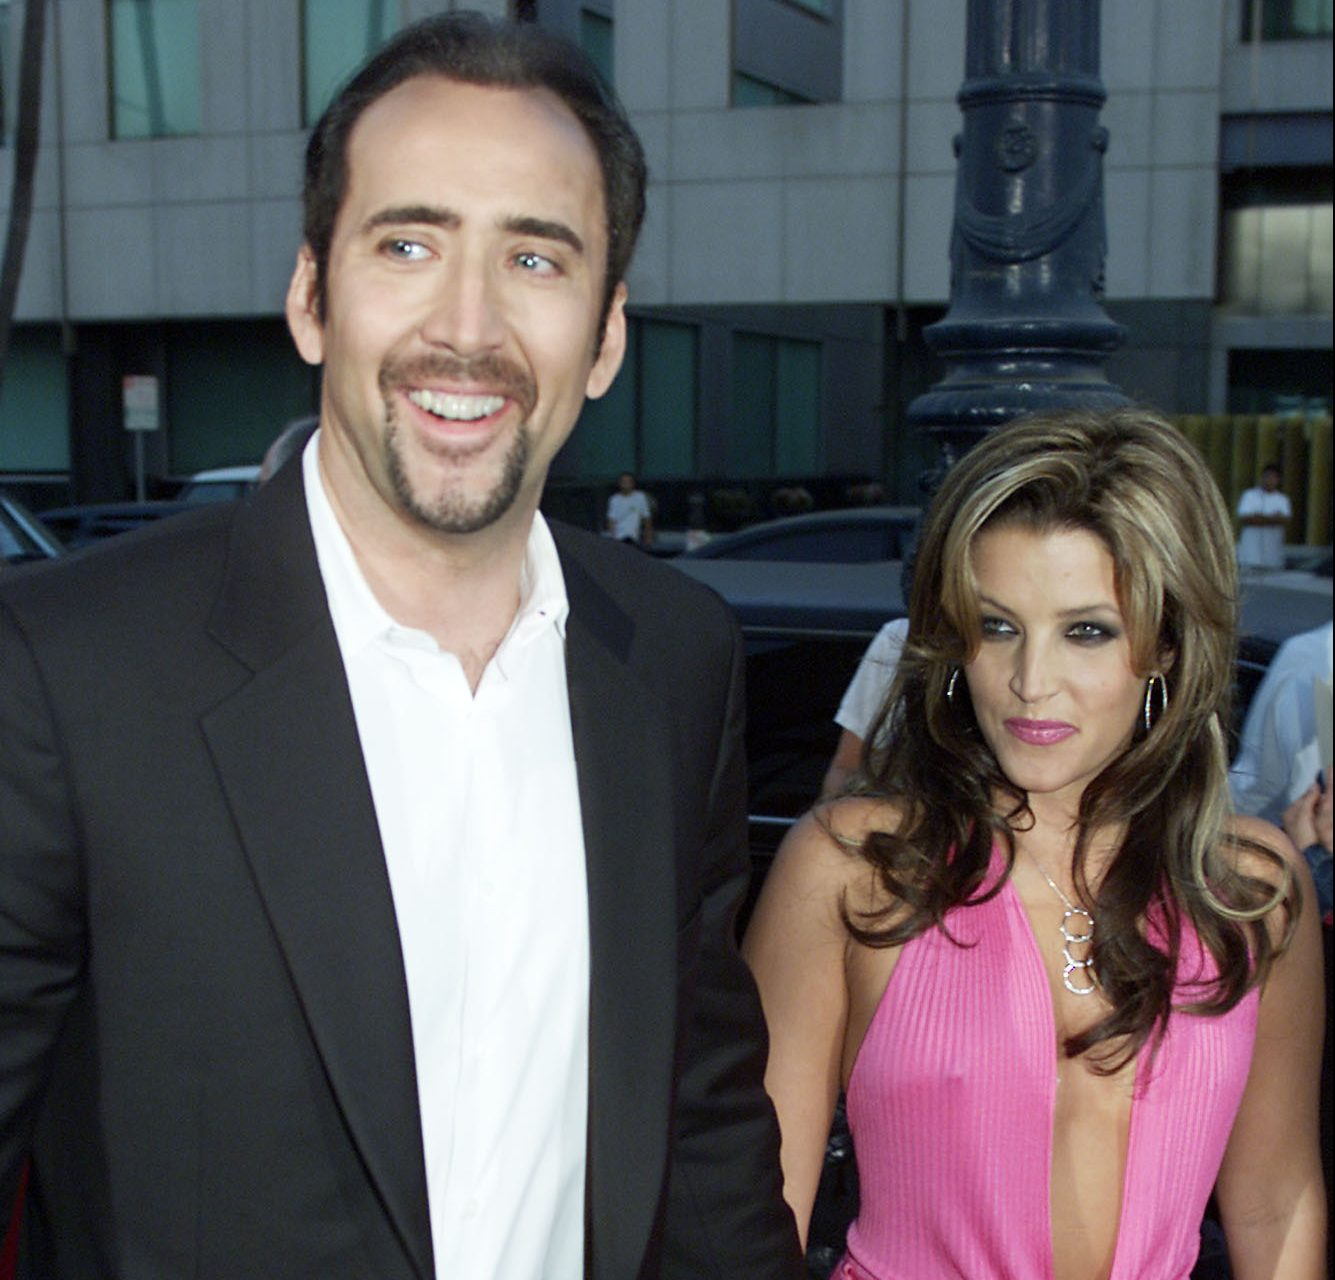 GettyImages 2252050 e1622027166835 Unlikely Celebrity Couples You Won't Believe Ever Dated